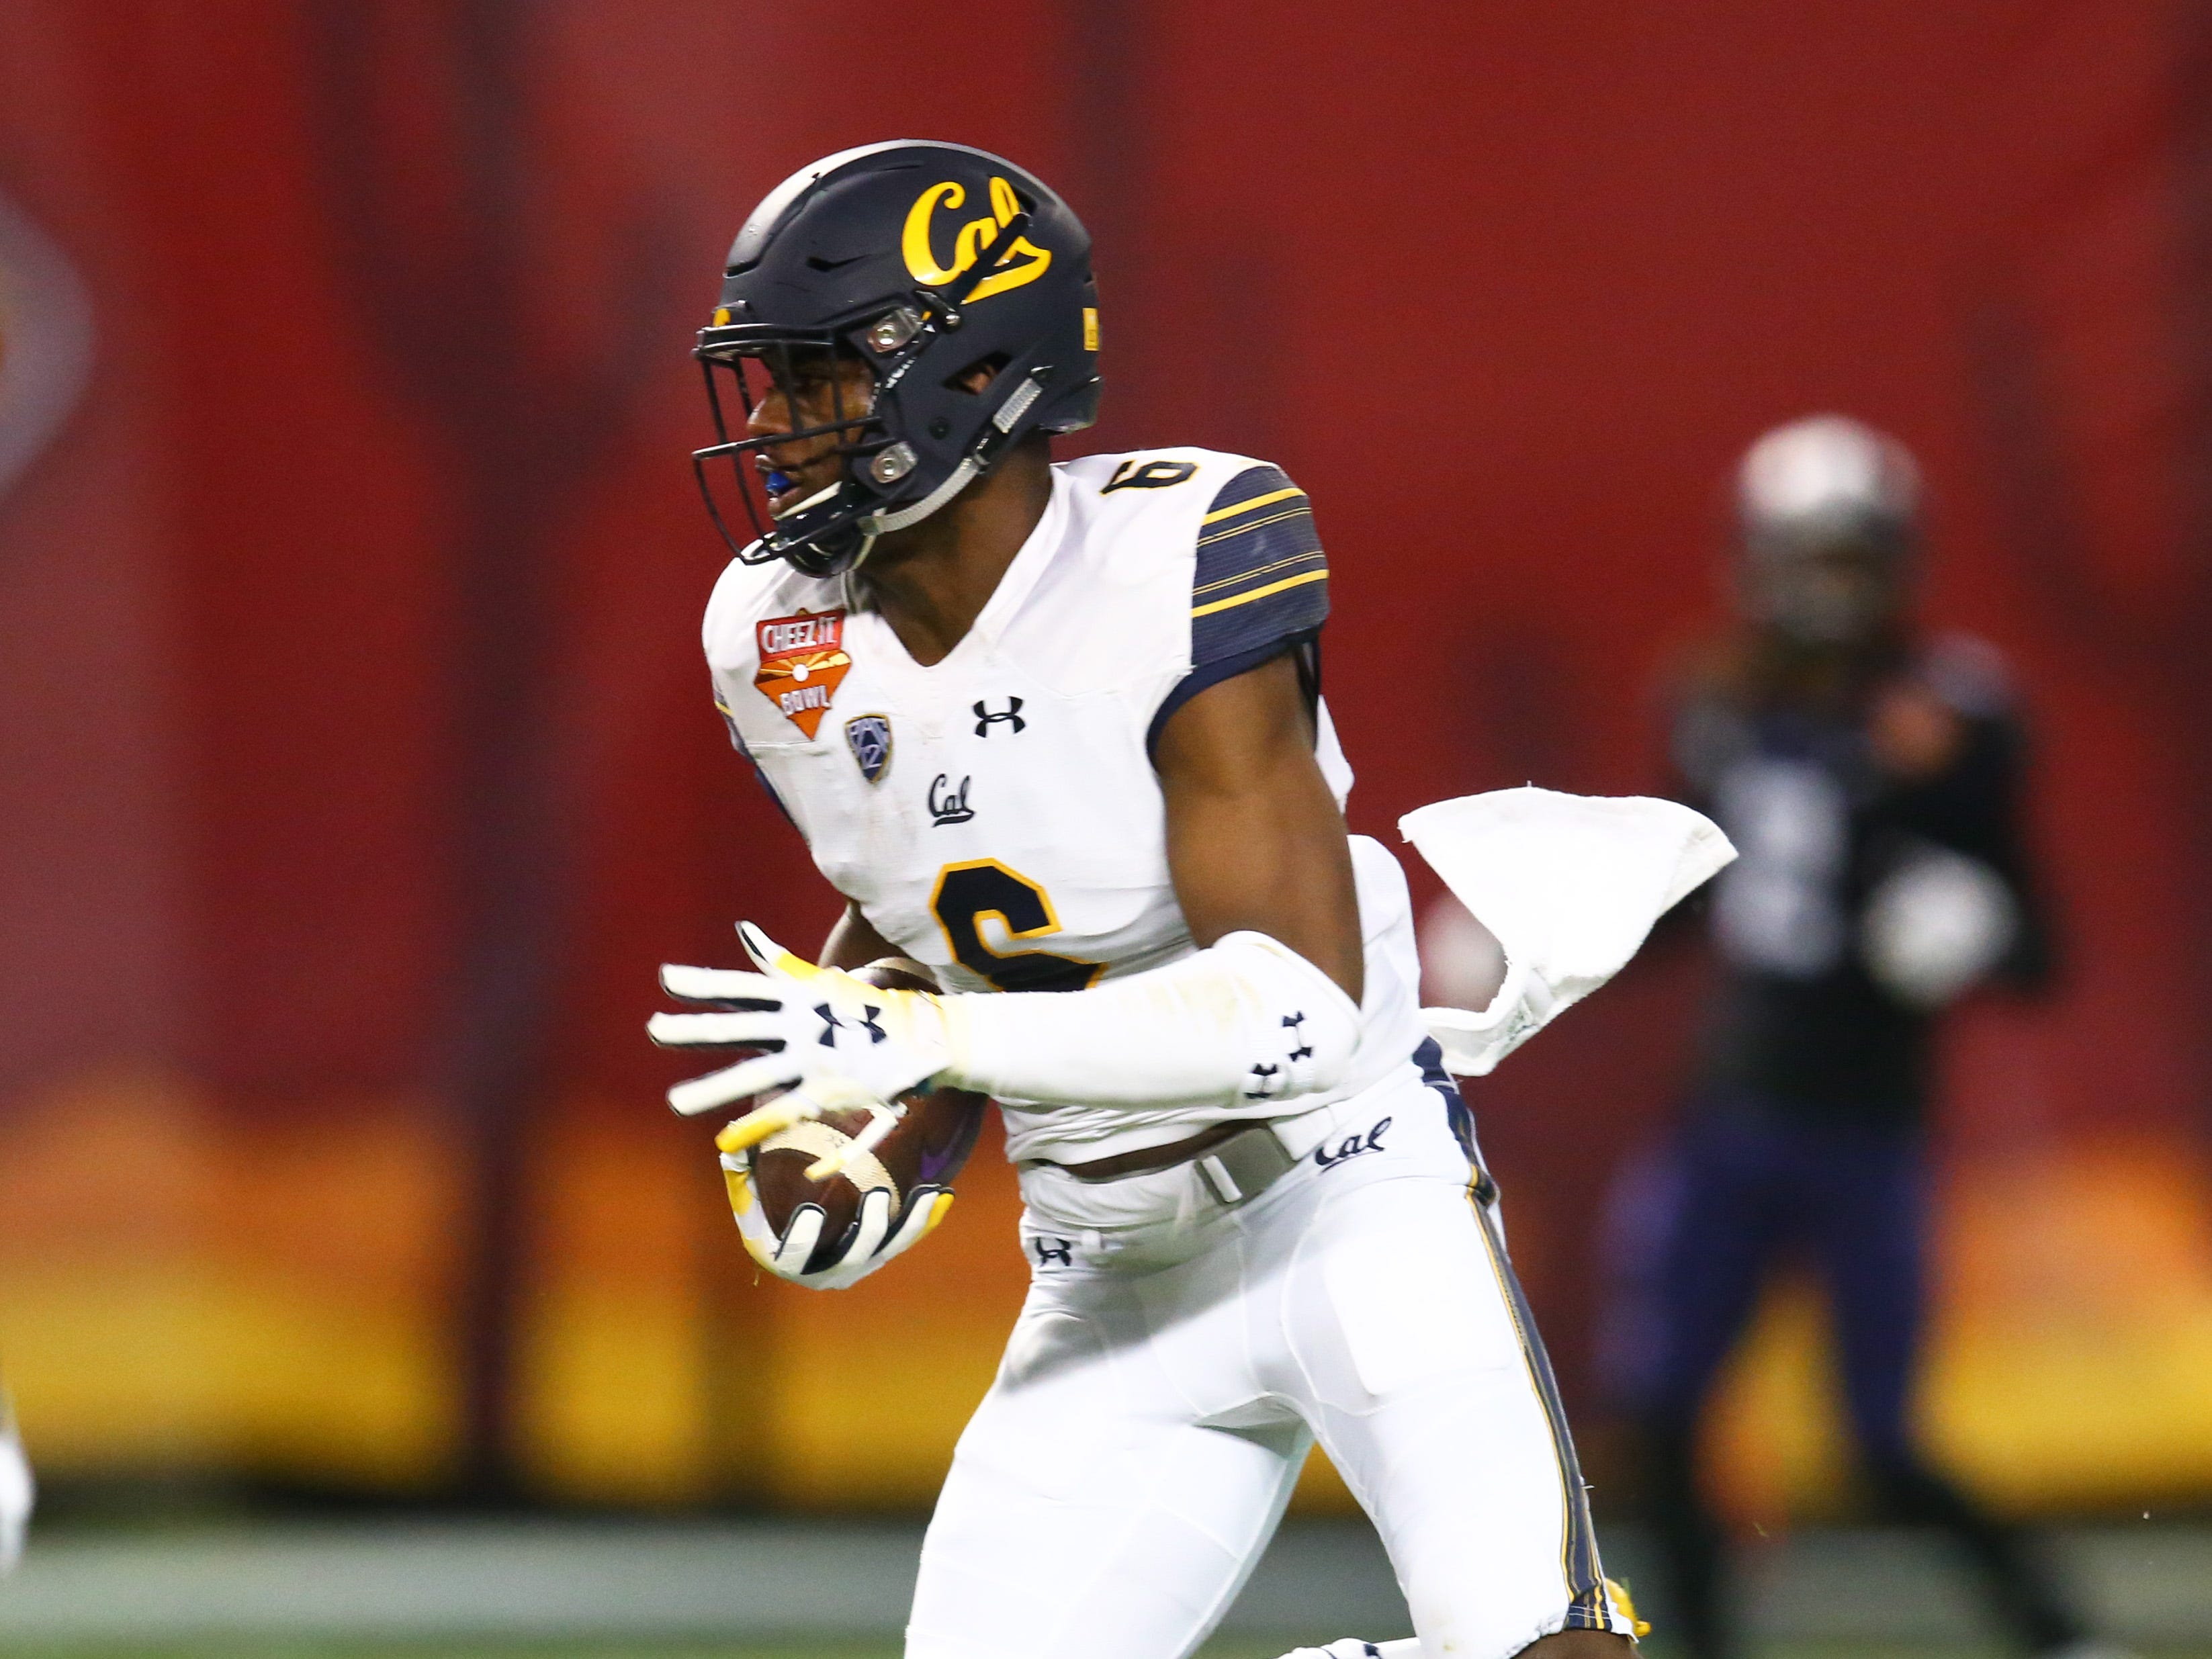 Dec 26, 2018; Phoenix, AZ, USA; California Golden Bears safety Jaylinn Hawkins (6) returns after an interception against the Texas Christian Horned Frogs in the first half of the 2018 Cheez-It Bowl at Chase Field.